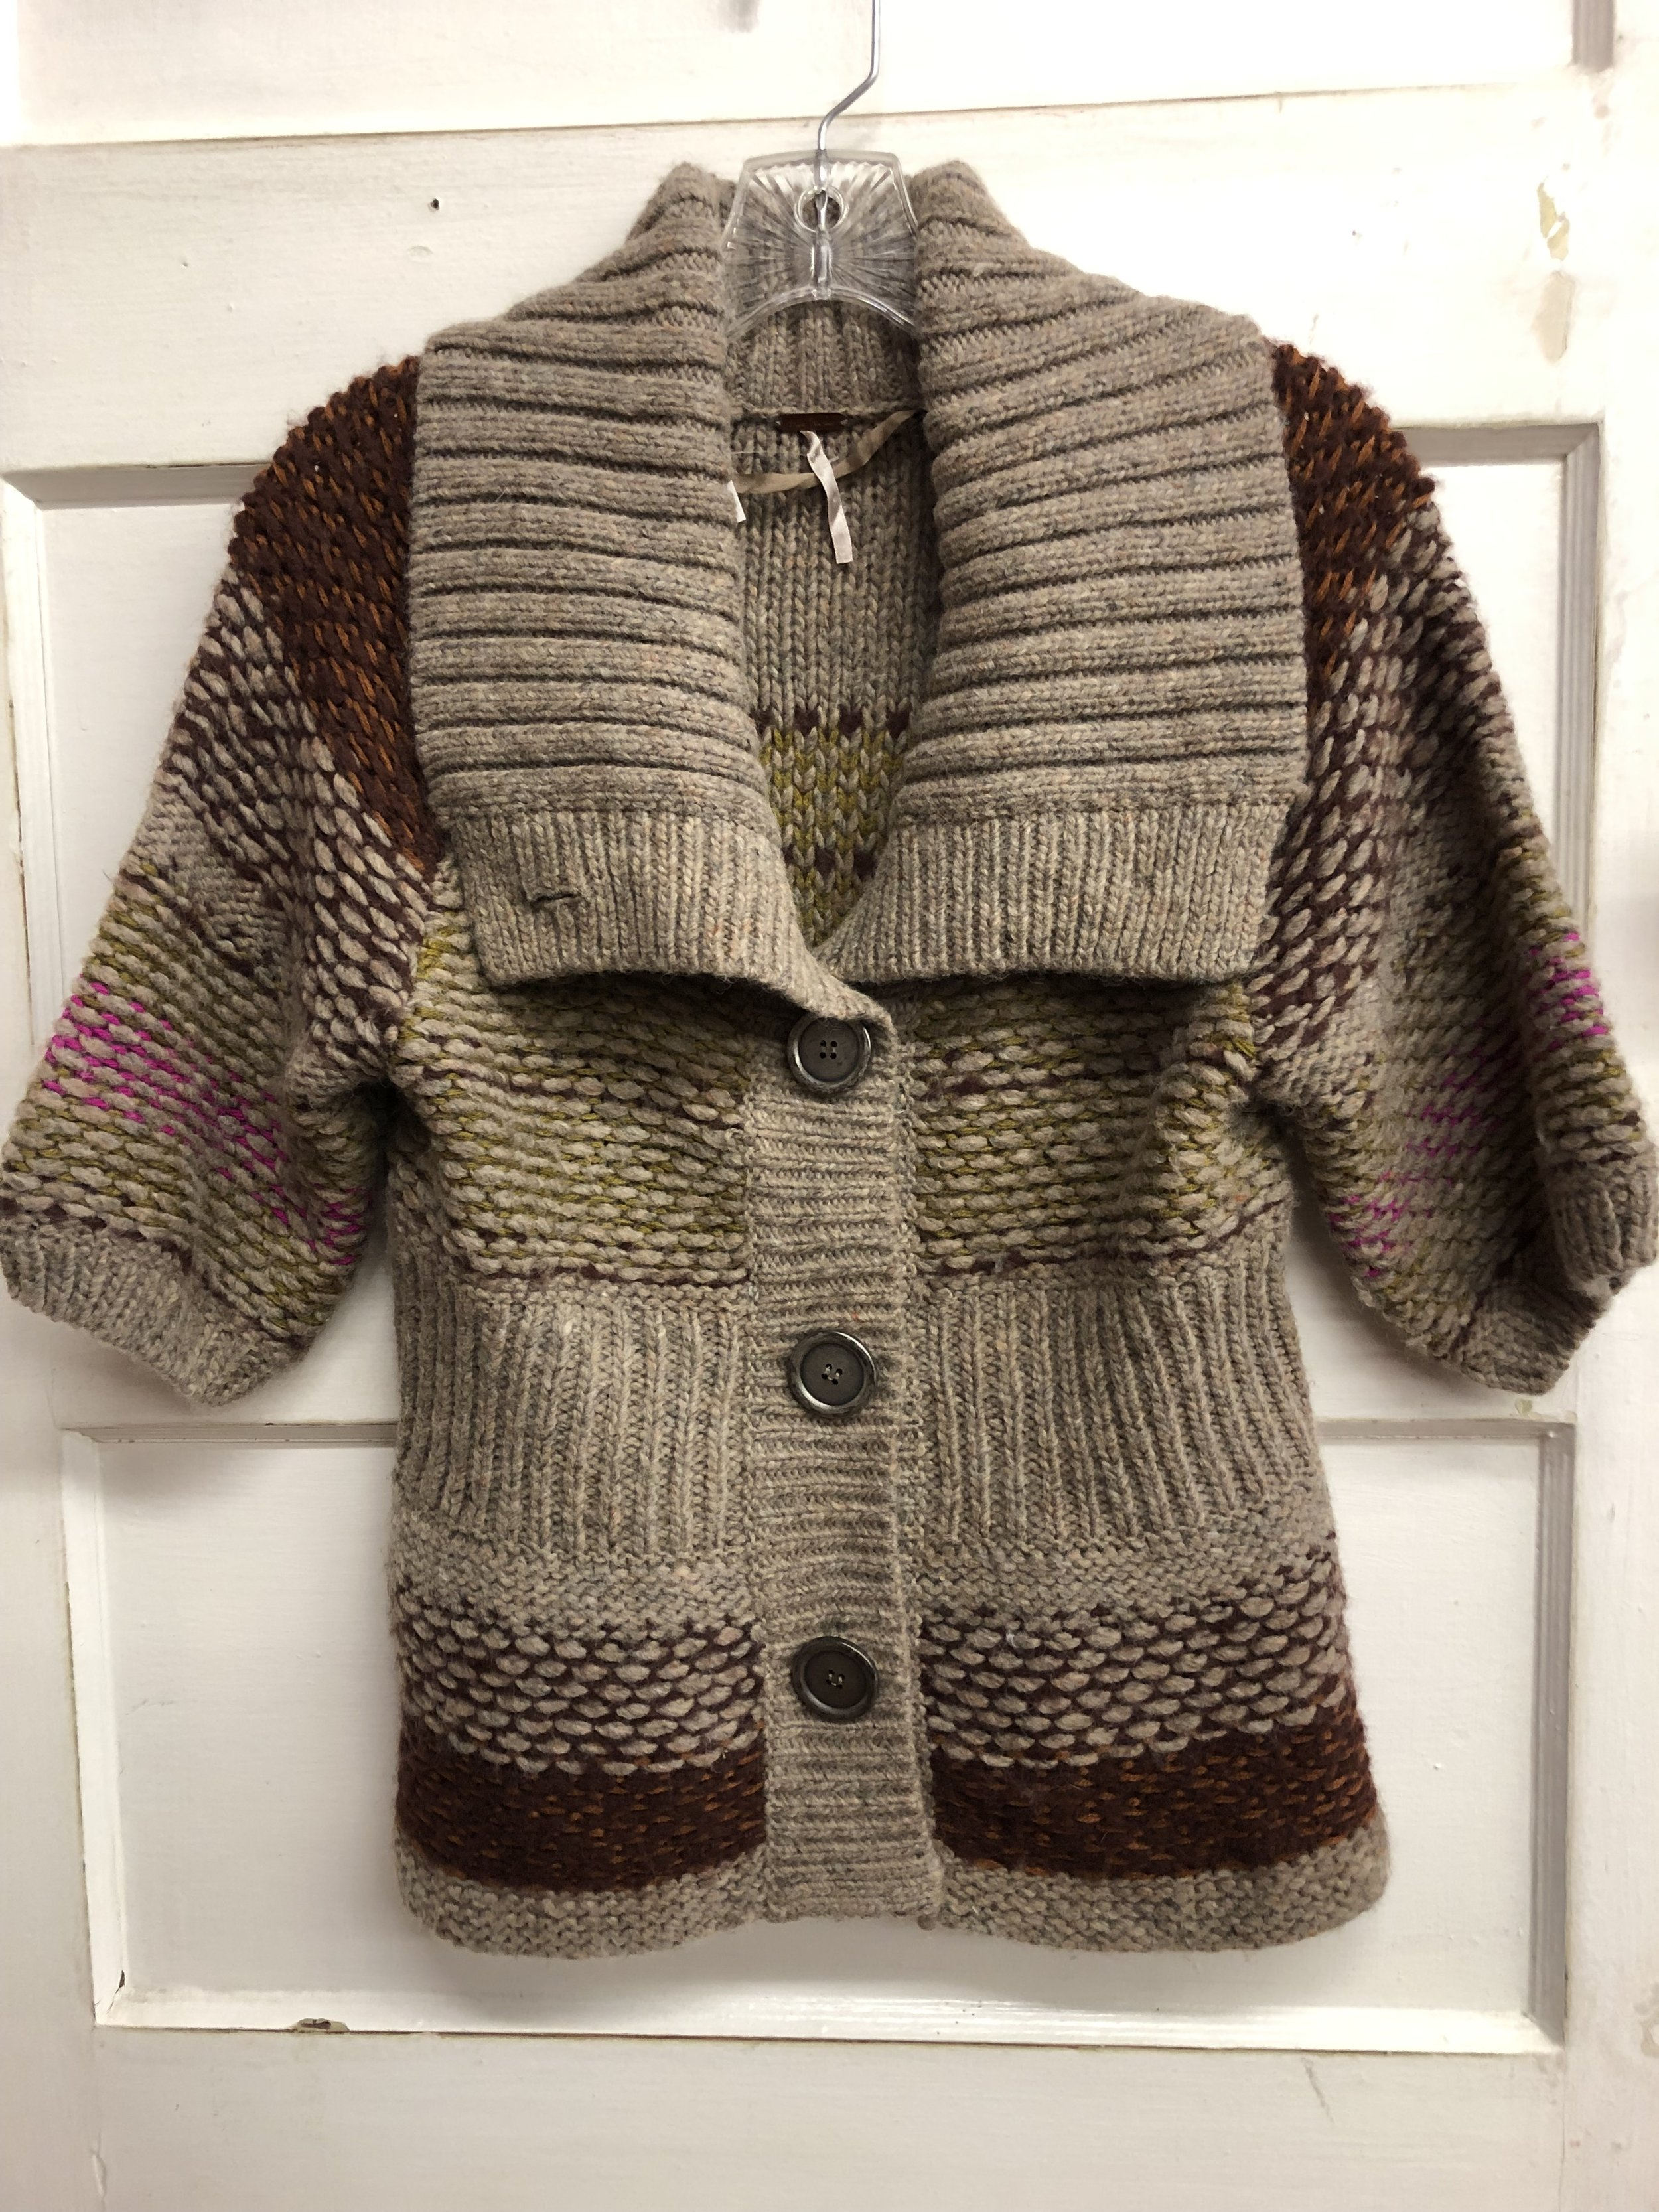 Free People Knit Sweater - S - $36.99